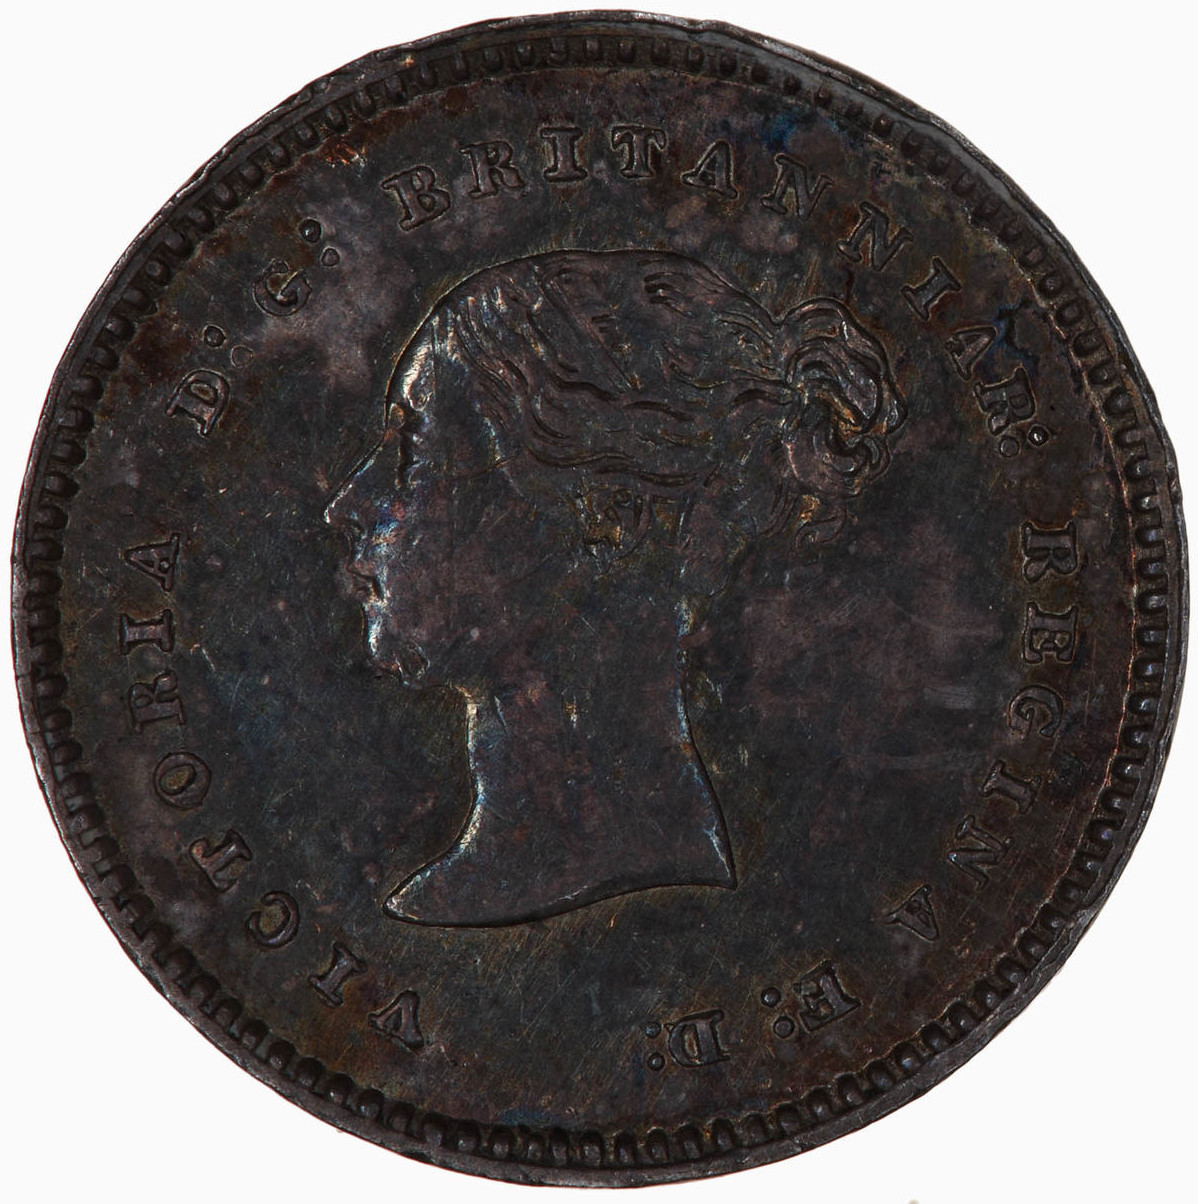 Twopence 1848 (Maundy): Photo Coin - Twopence (Maundy), Queen Victoria, Great Britain, 1848